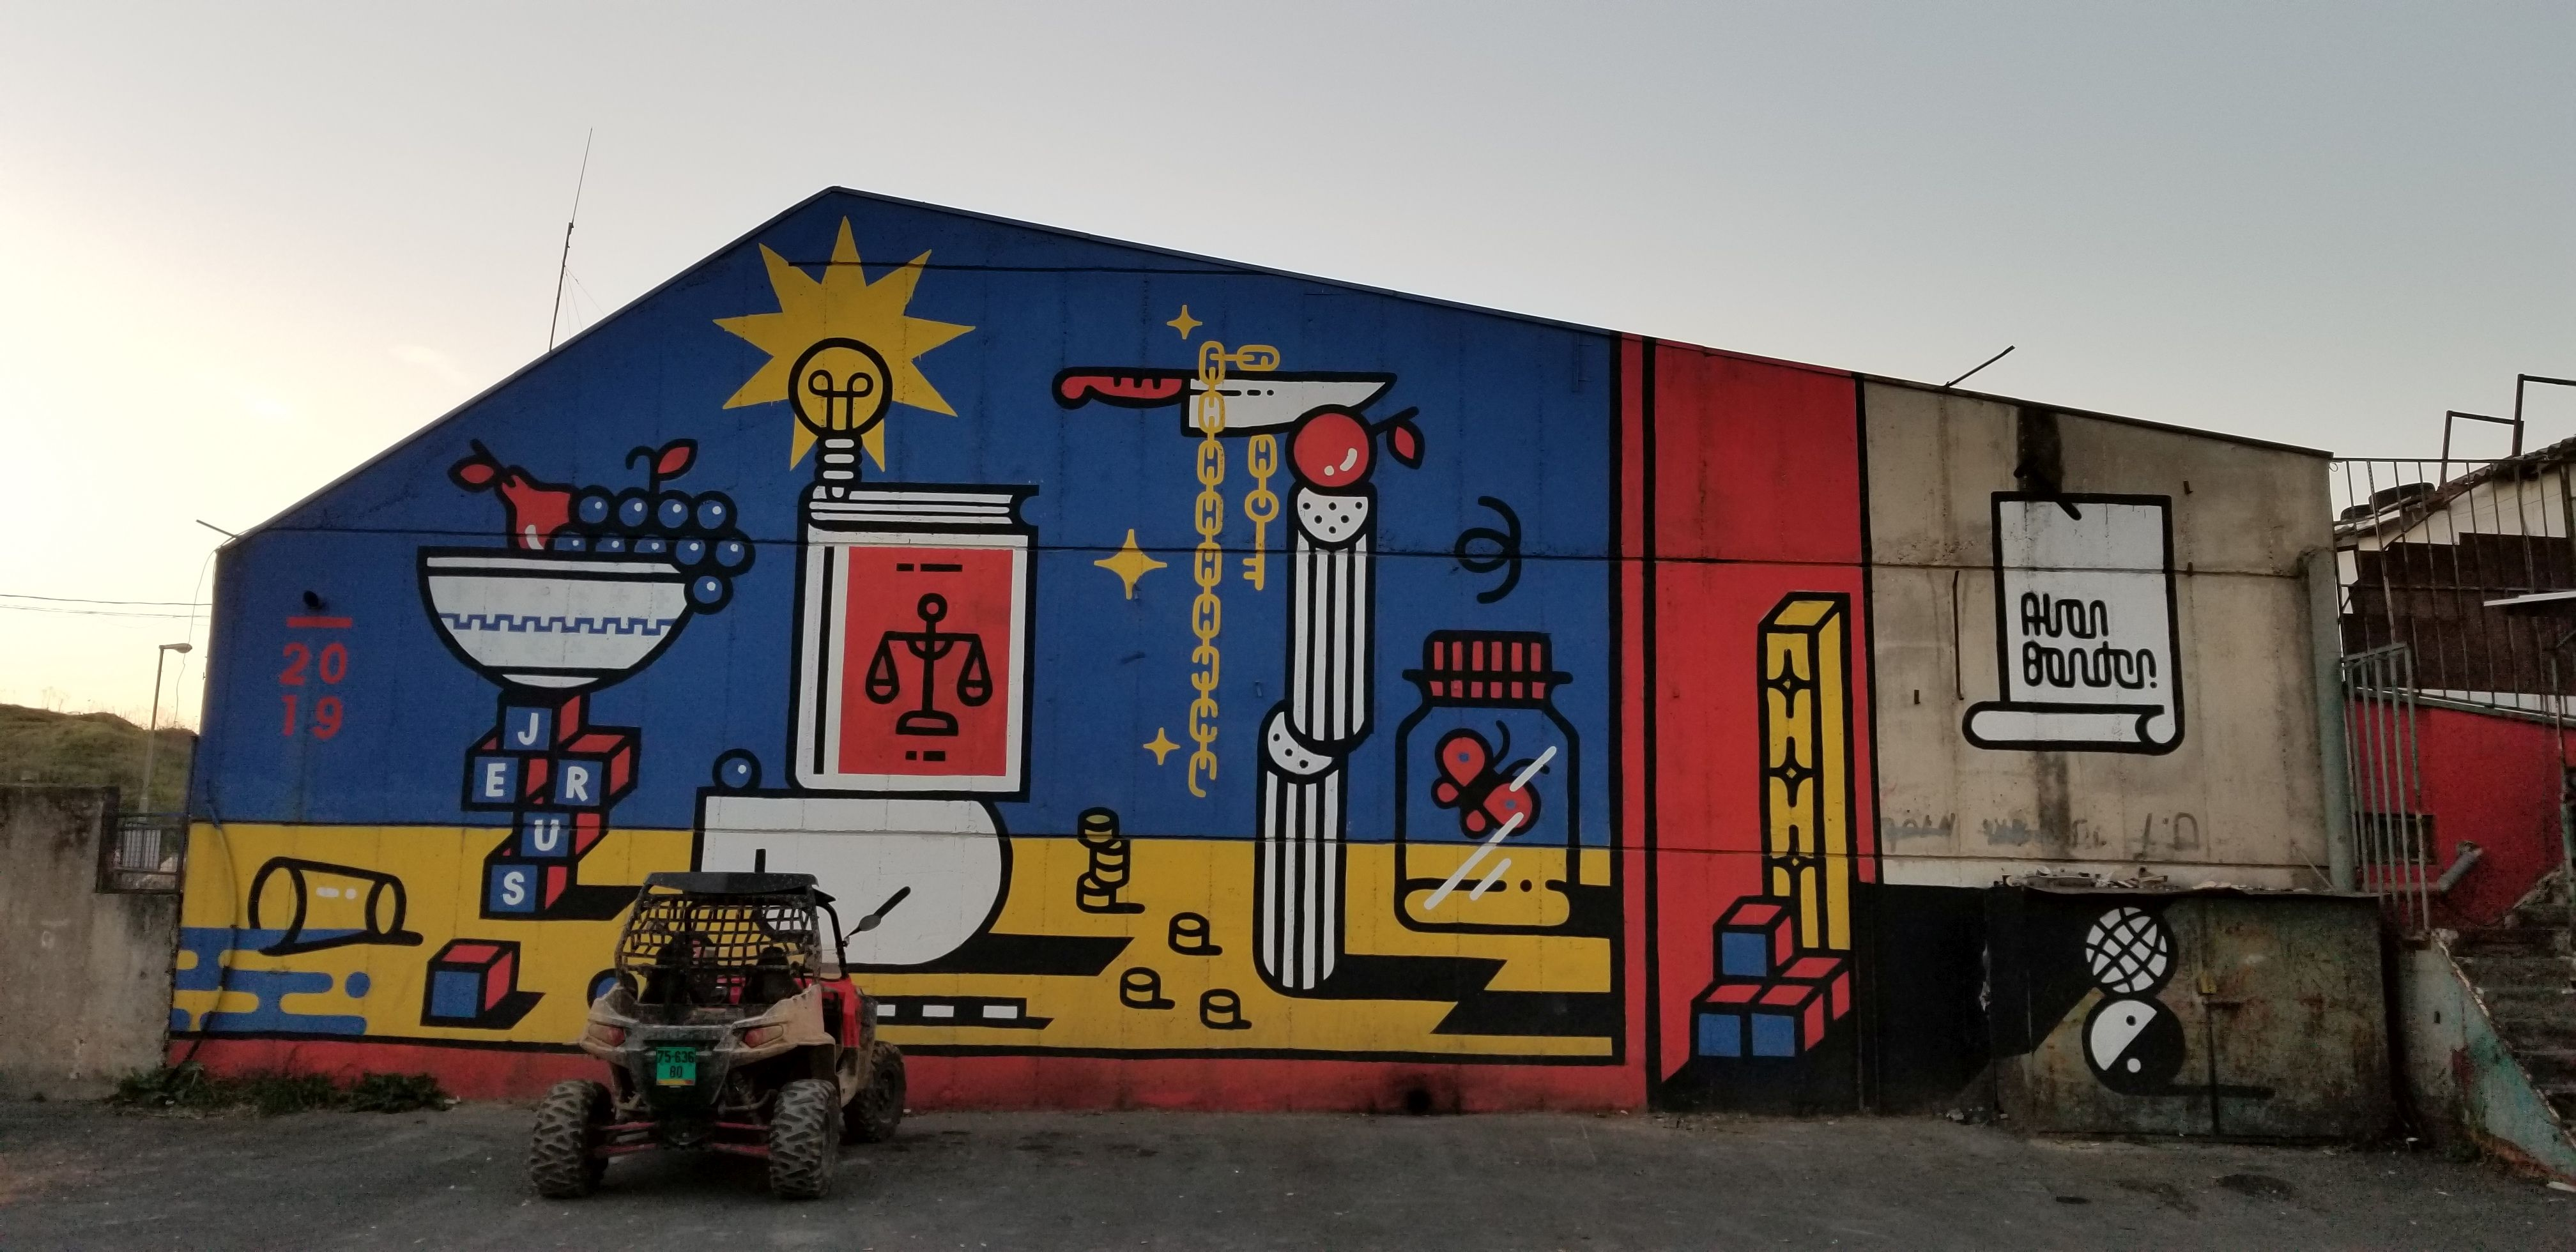 invited artists from Israel and abroad to paint on the buildings walls of Talpiot Industrial Zone - Street Art Gallery. Alon Bonder is a visual artist and